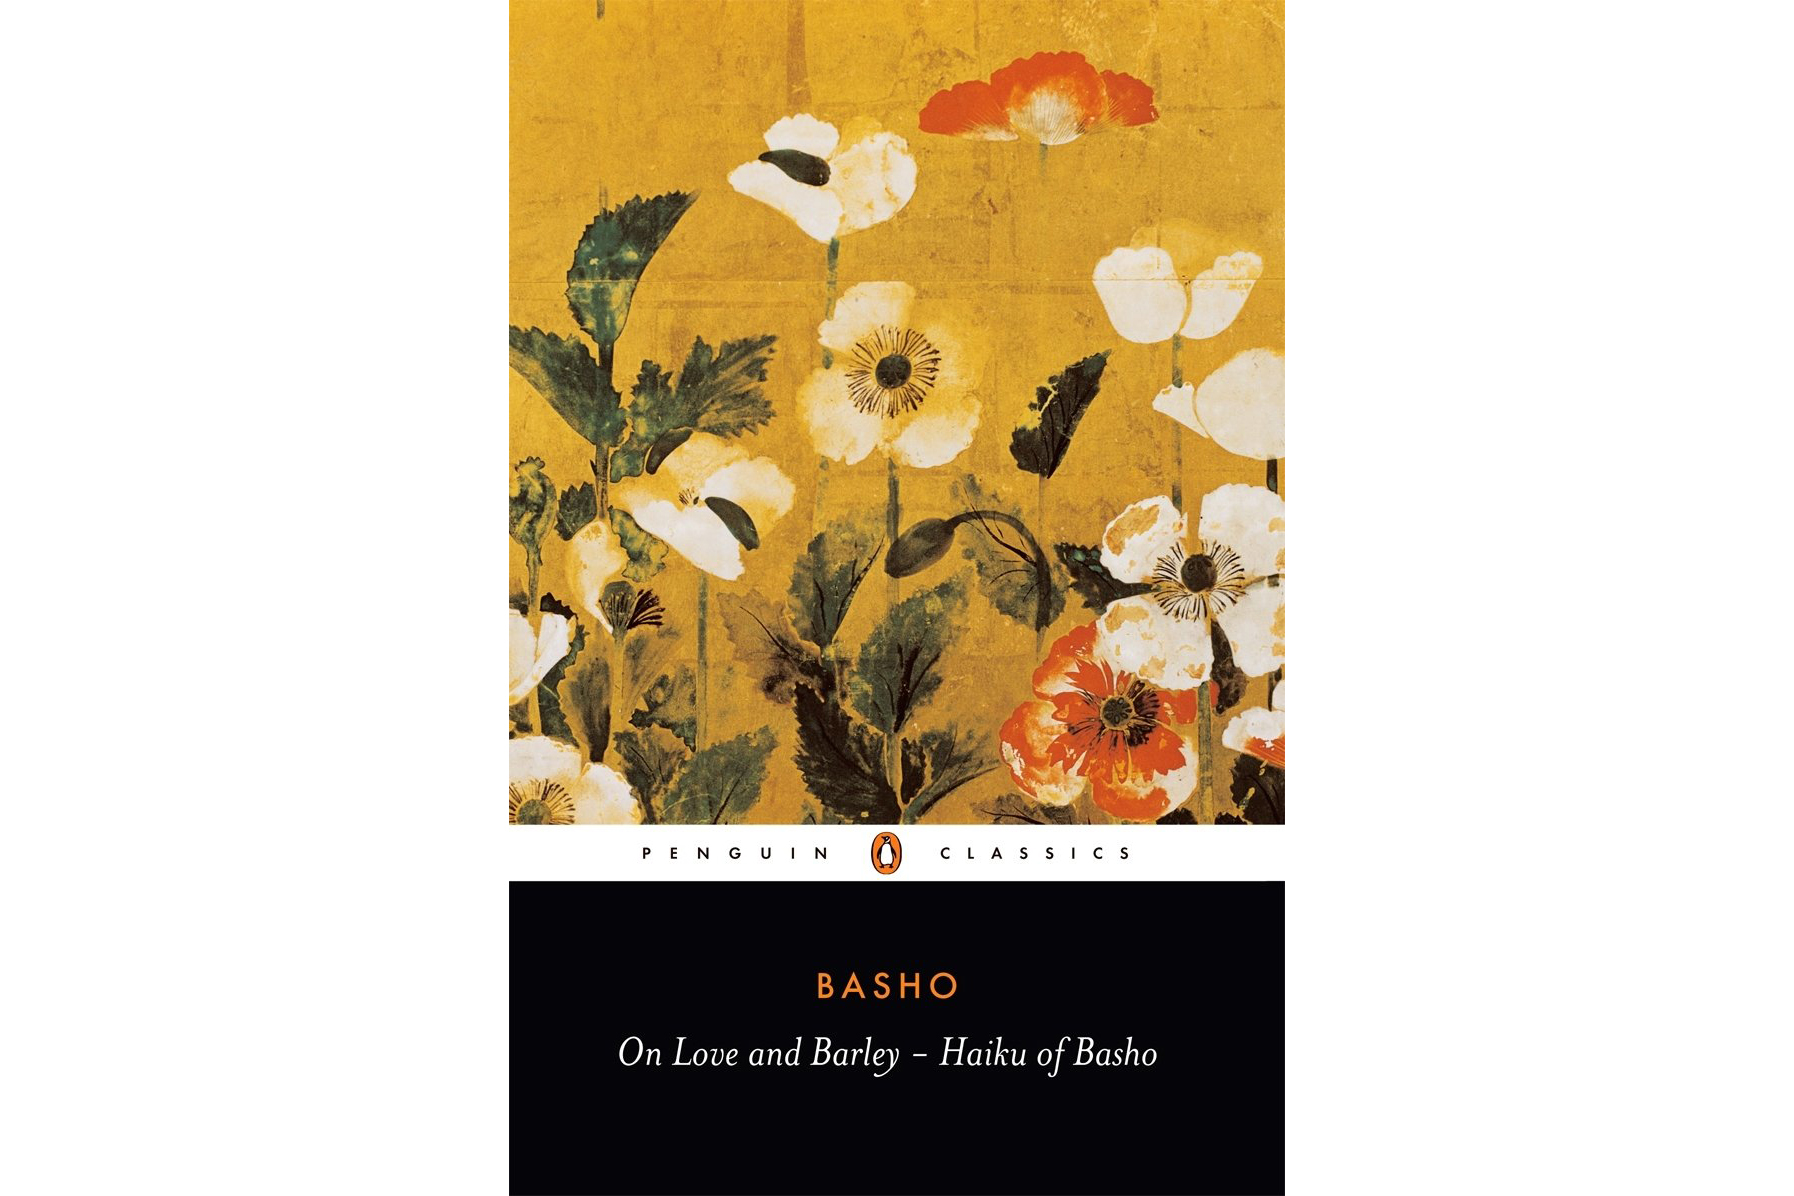 On Love and Barley, by Matsuo Bashō